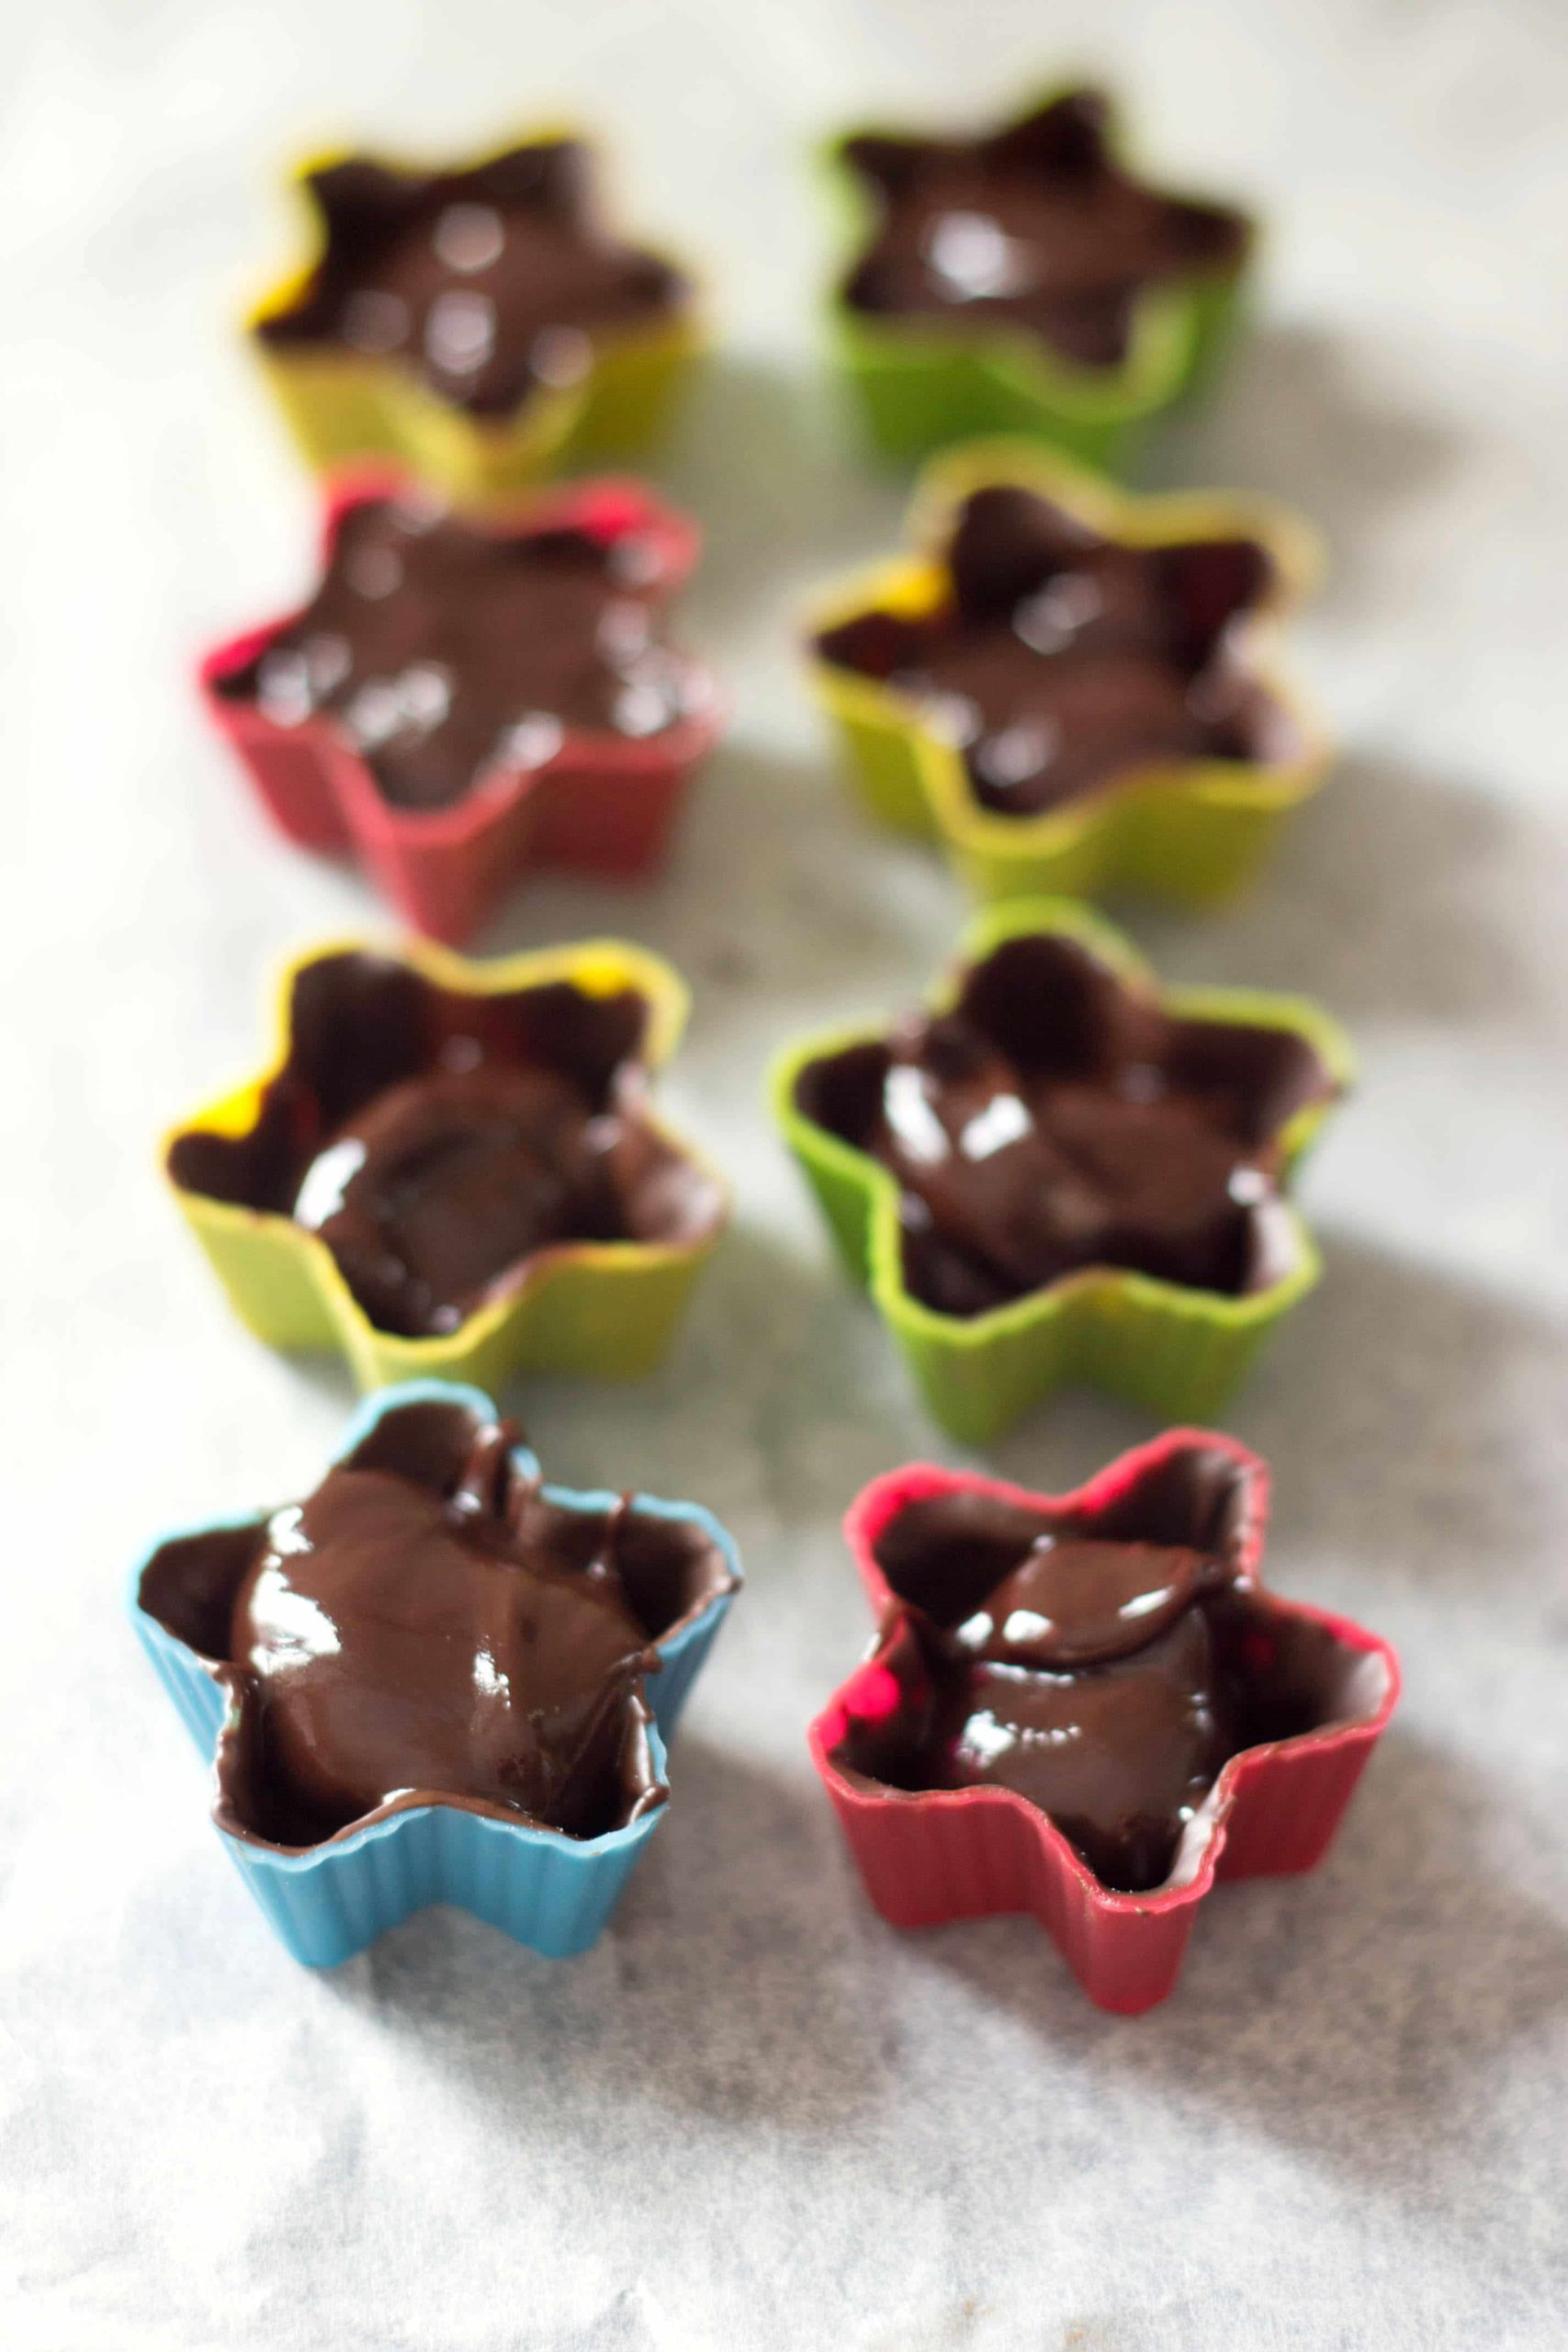 eight star shaped silicone moulds with dark chocolate truffles with melted chocolate in them.